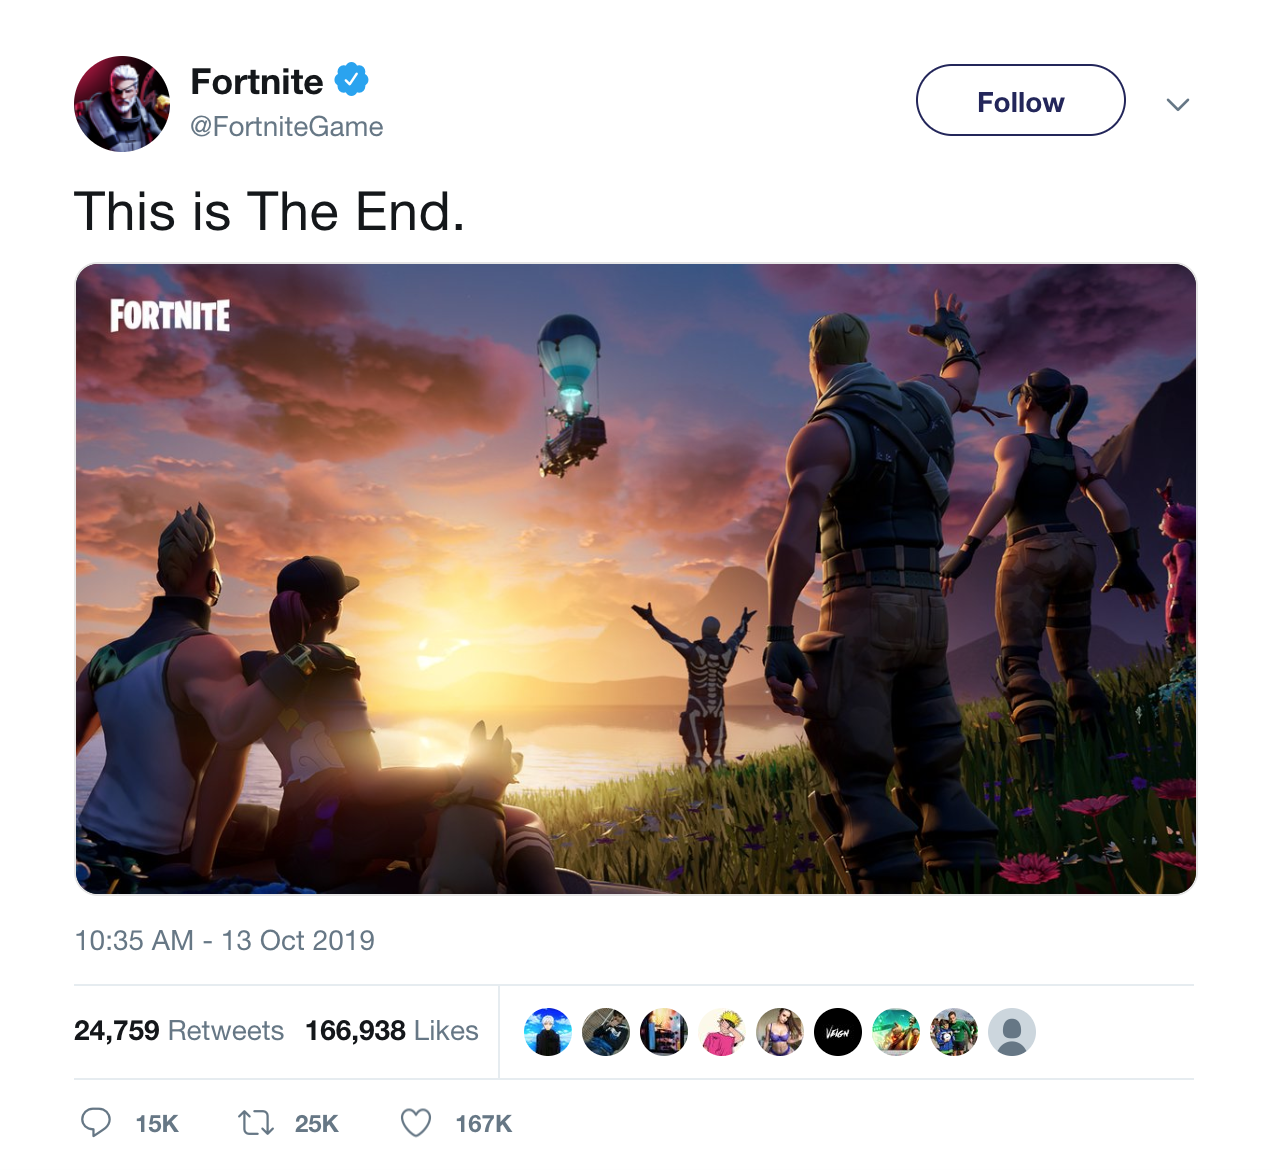 The first piece of evidence from Fortnite and EA since the black hole incident made players believe the game could have really come to an end.